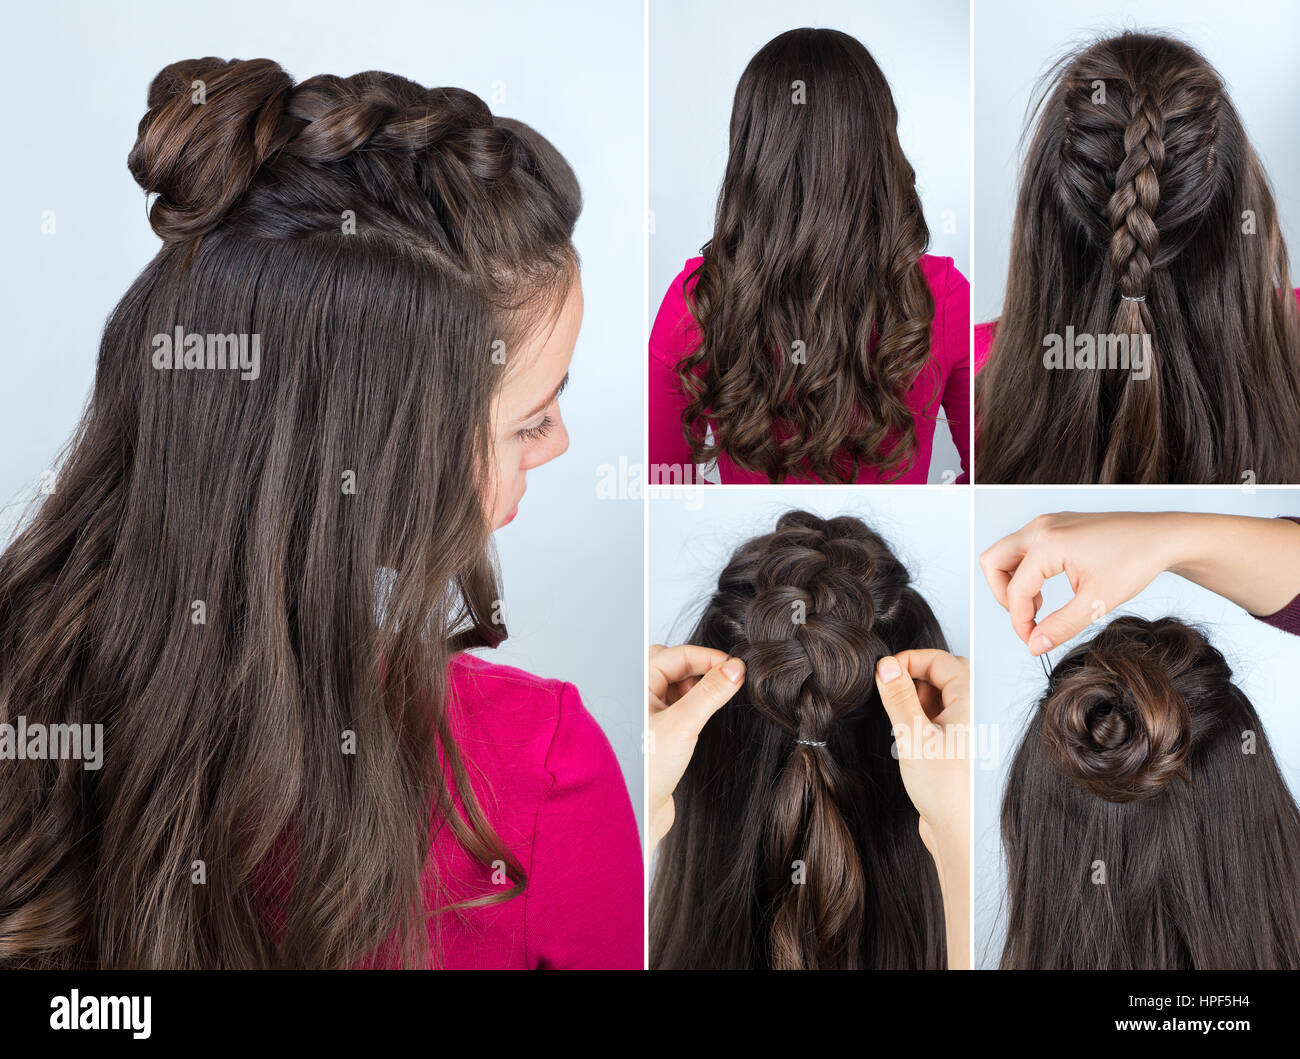 Modern Hairstyle Twisted Bun And Braid With Curly Loose Hair Stock